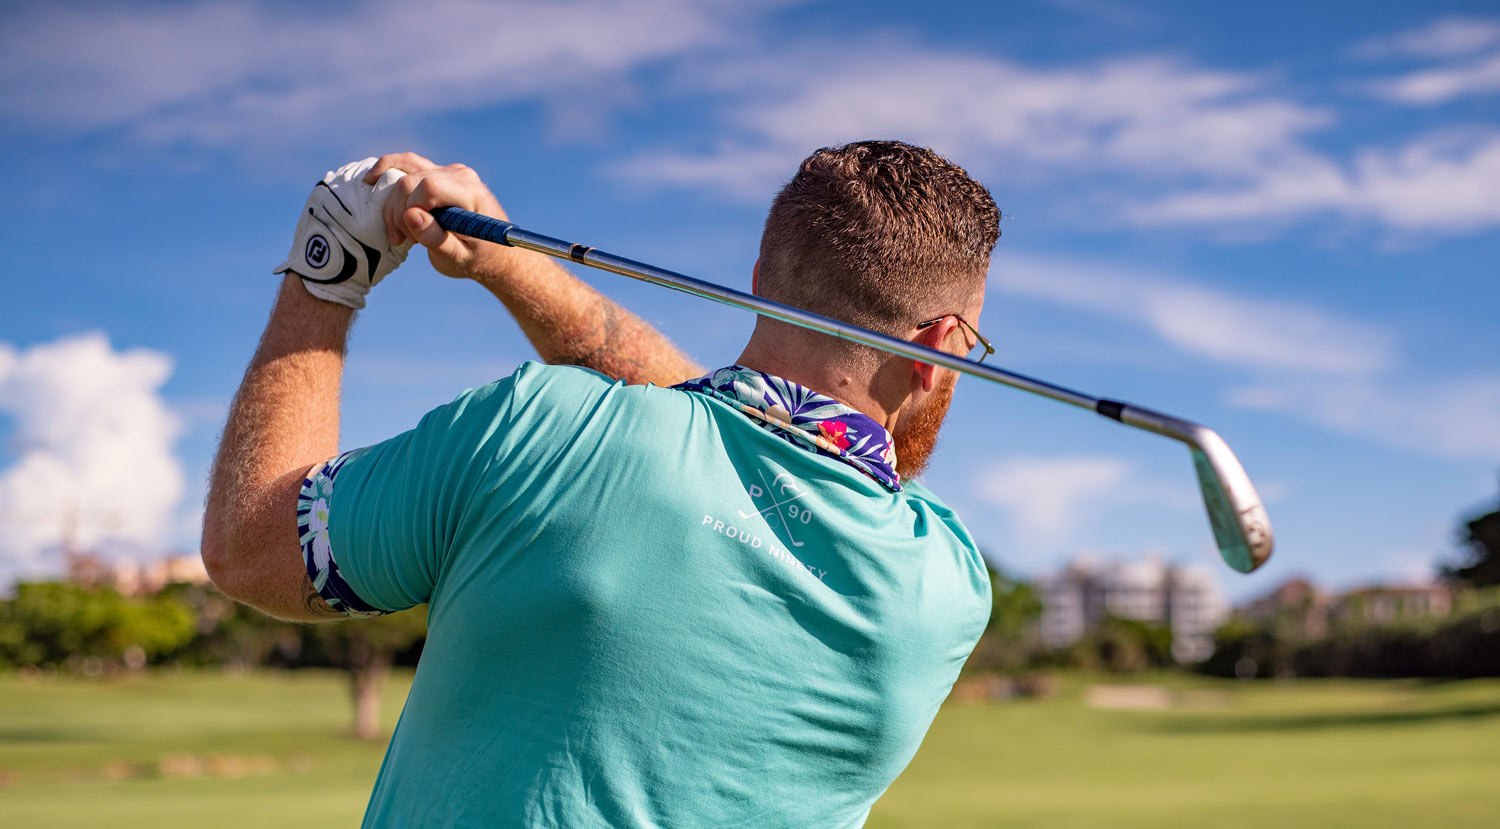 TIPS FOR THE MATURE AGE GOLFER – THINGS TO AVOID